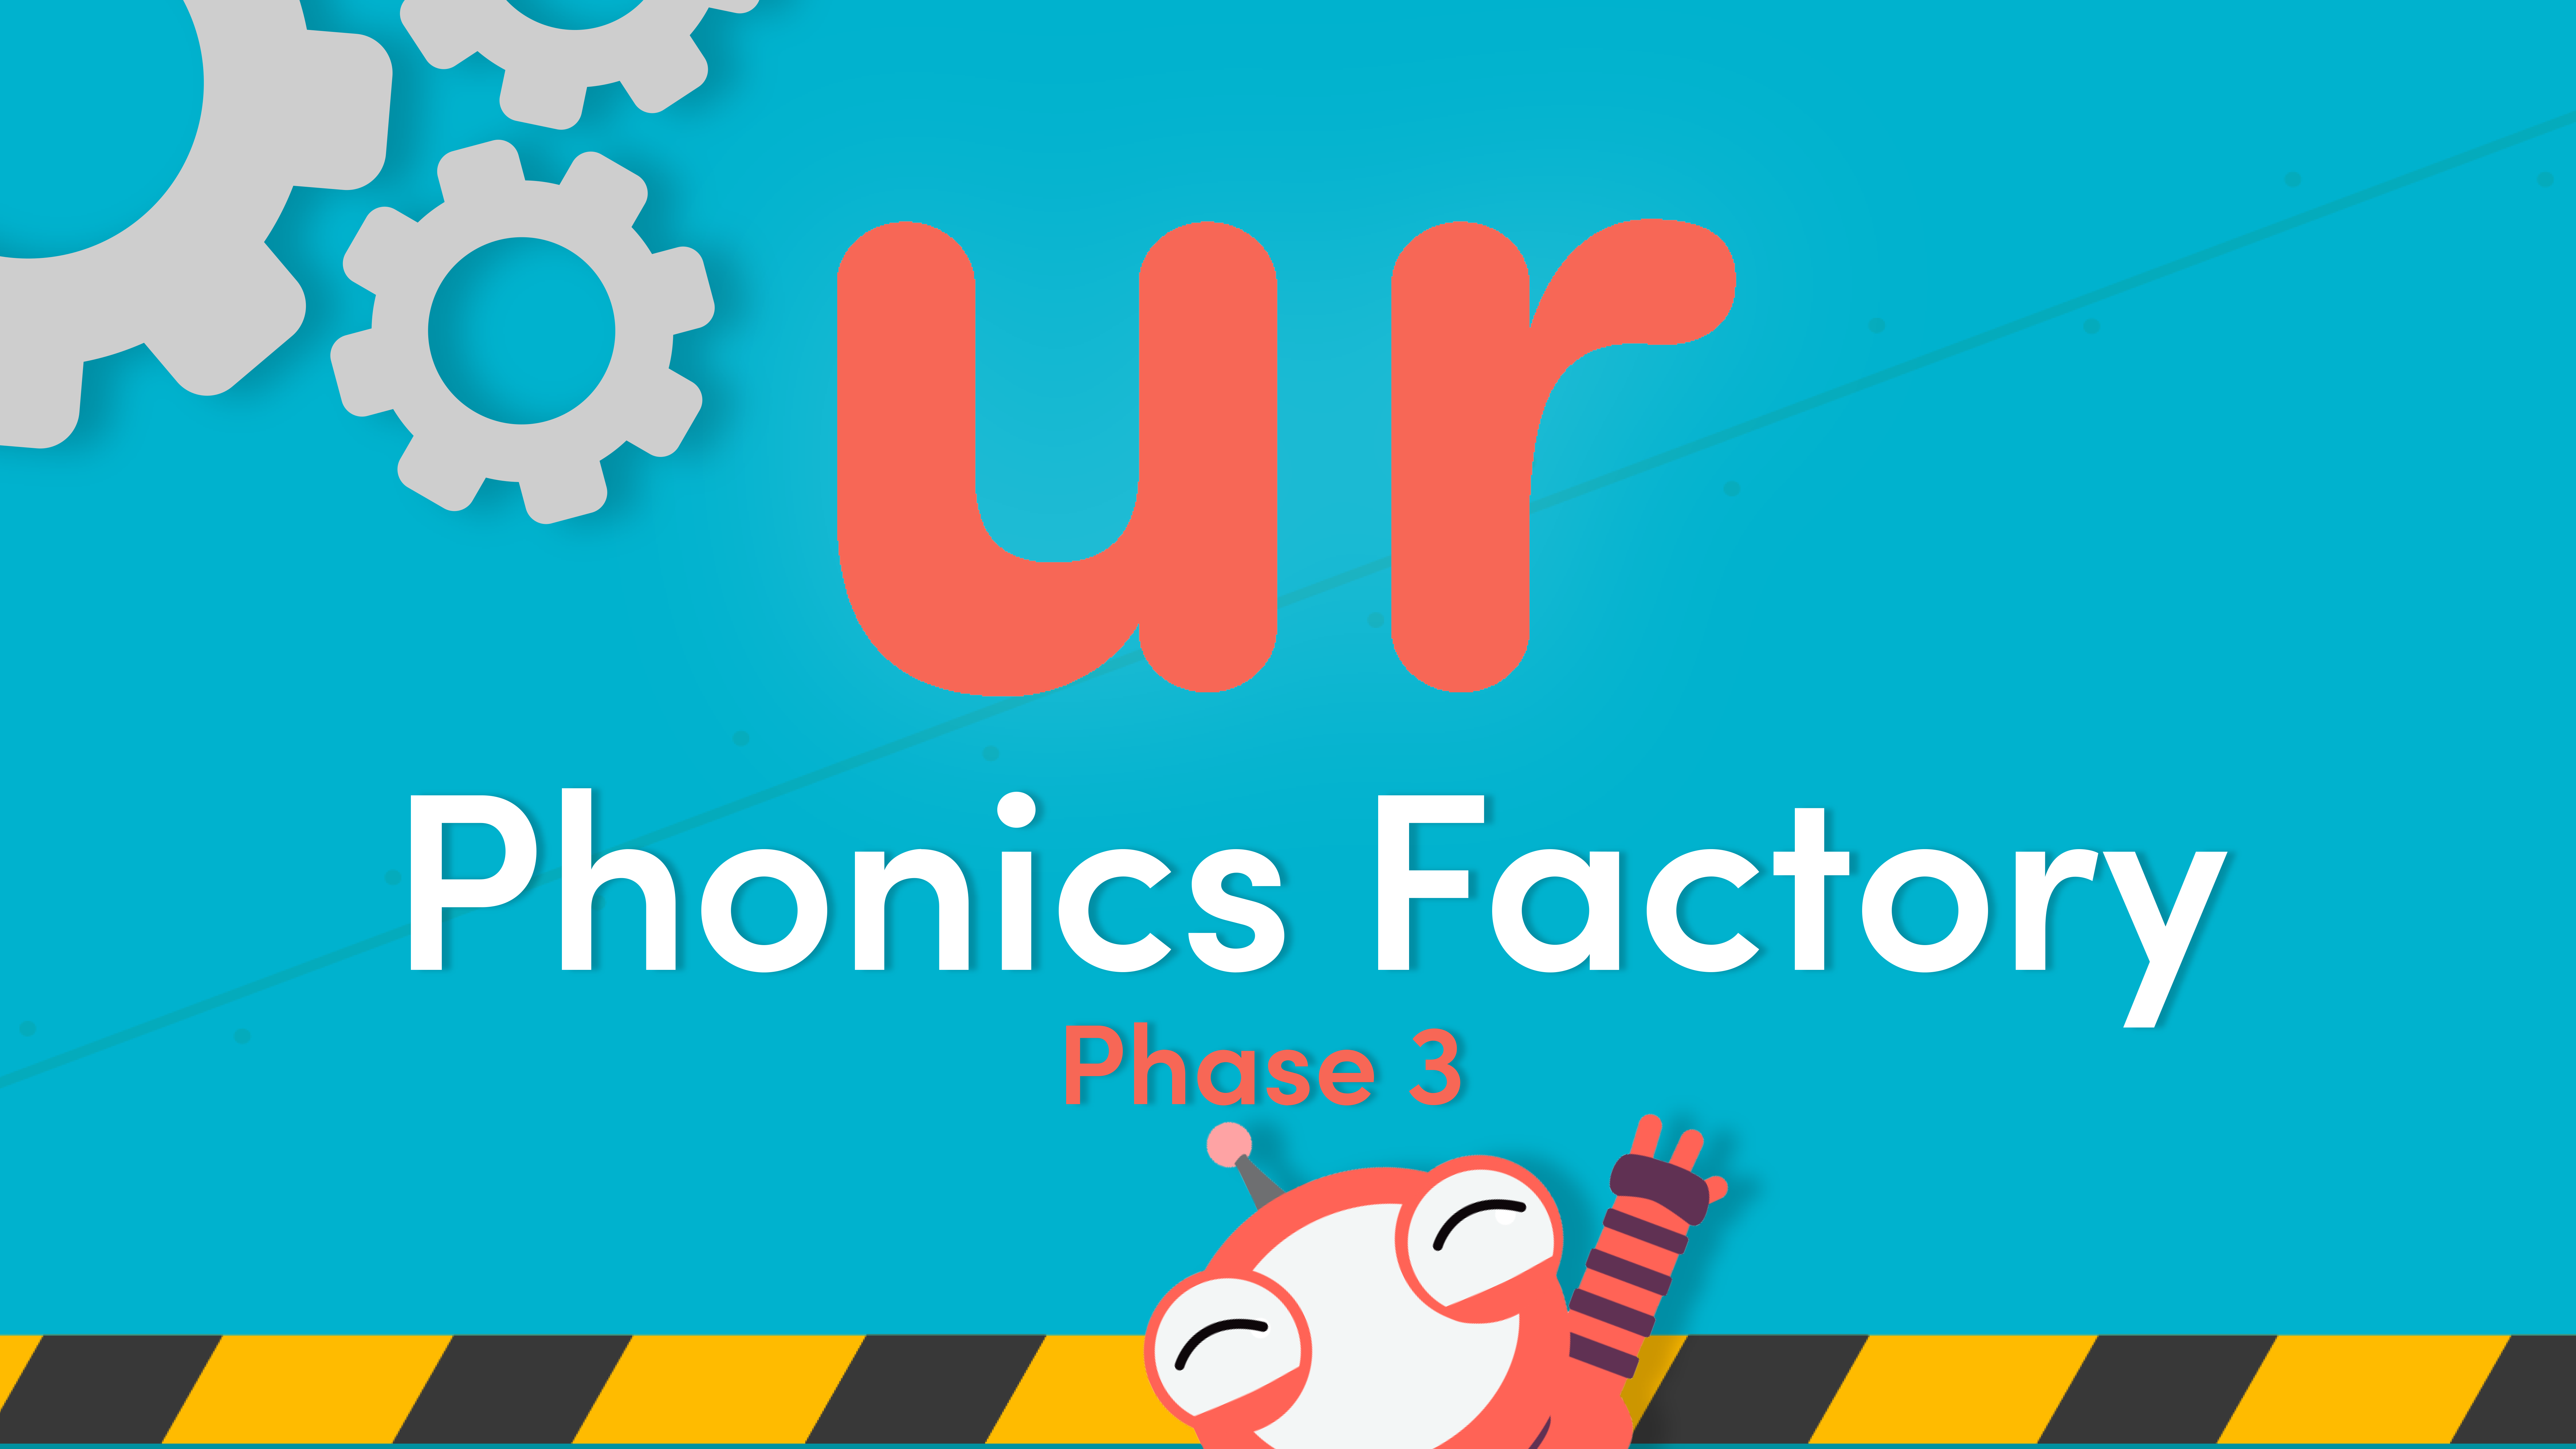 Phonics Phase 3 ur Sound Video in the Phonics Factory